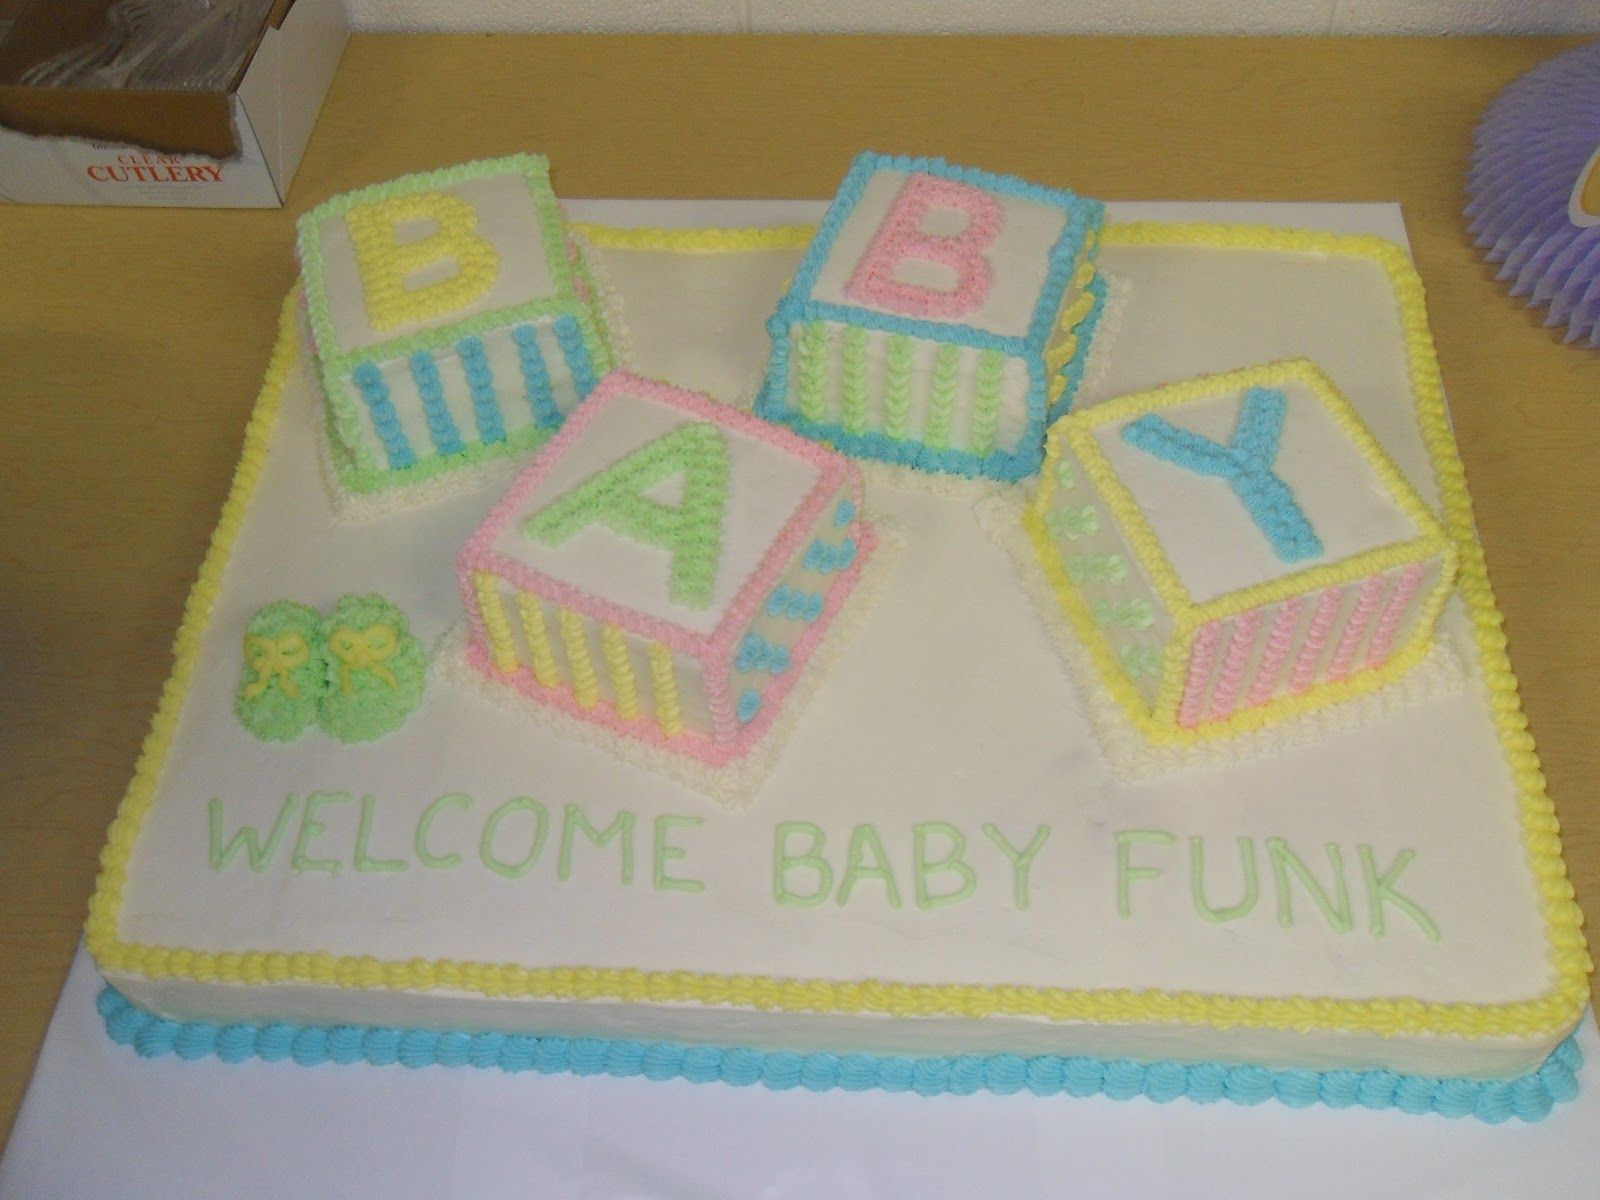 This Is The Baby Shower I Made For My Sister (her Last Name Is Funk